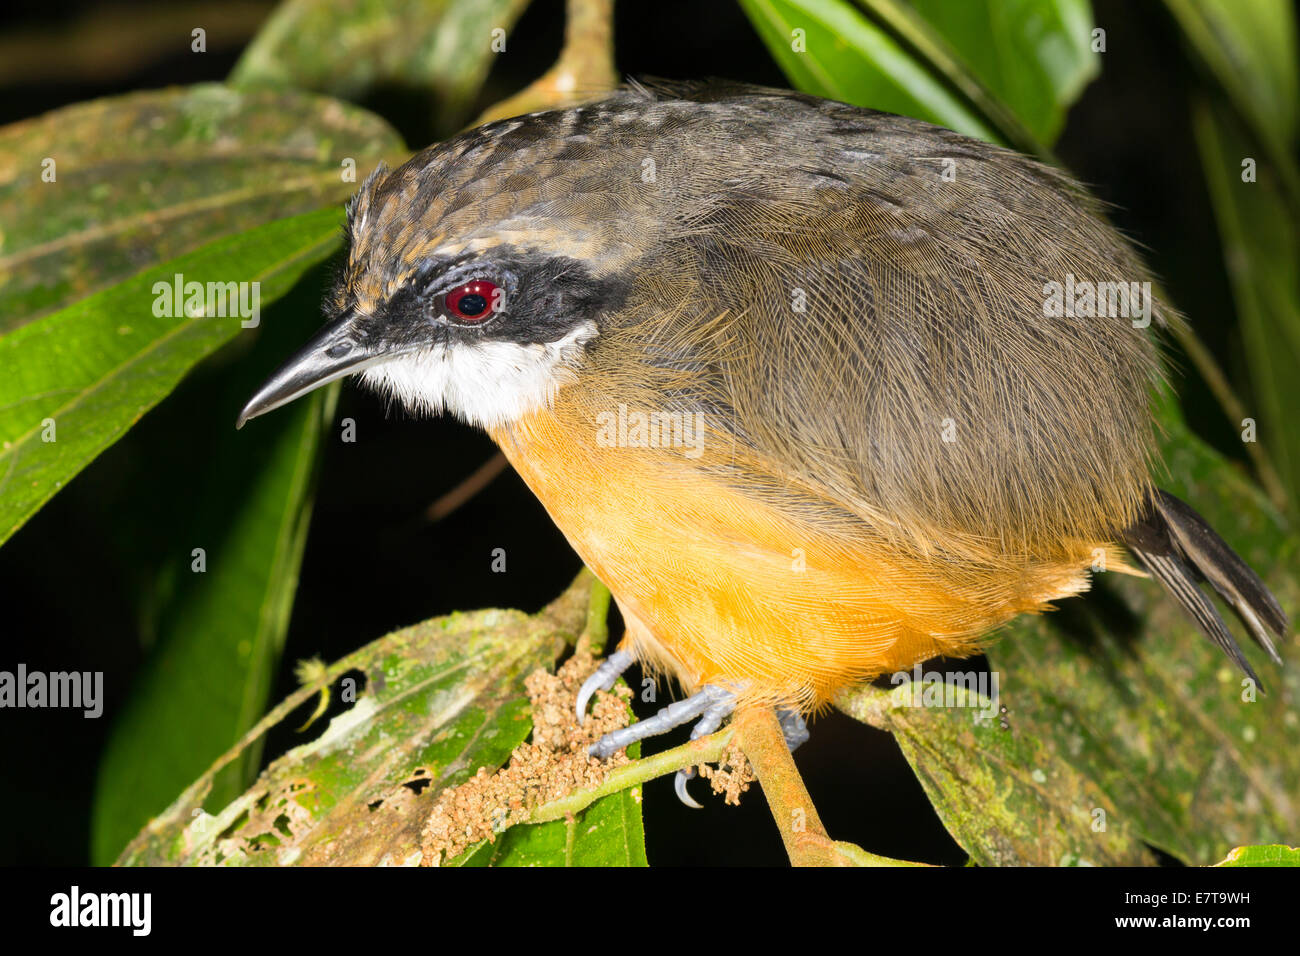 Unidentified bird roosting in the rainforest understory at night, Ecuador. - Stock Image